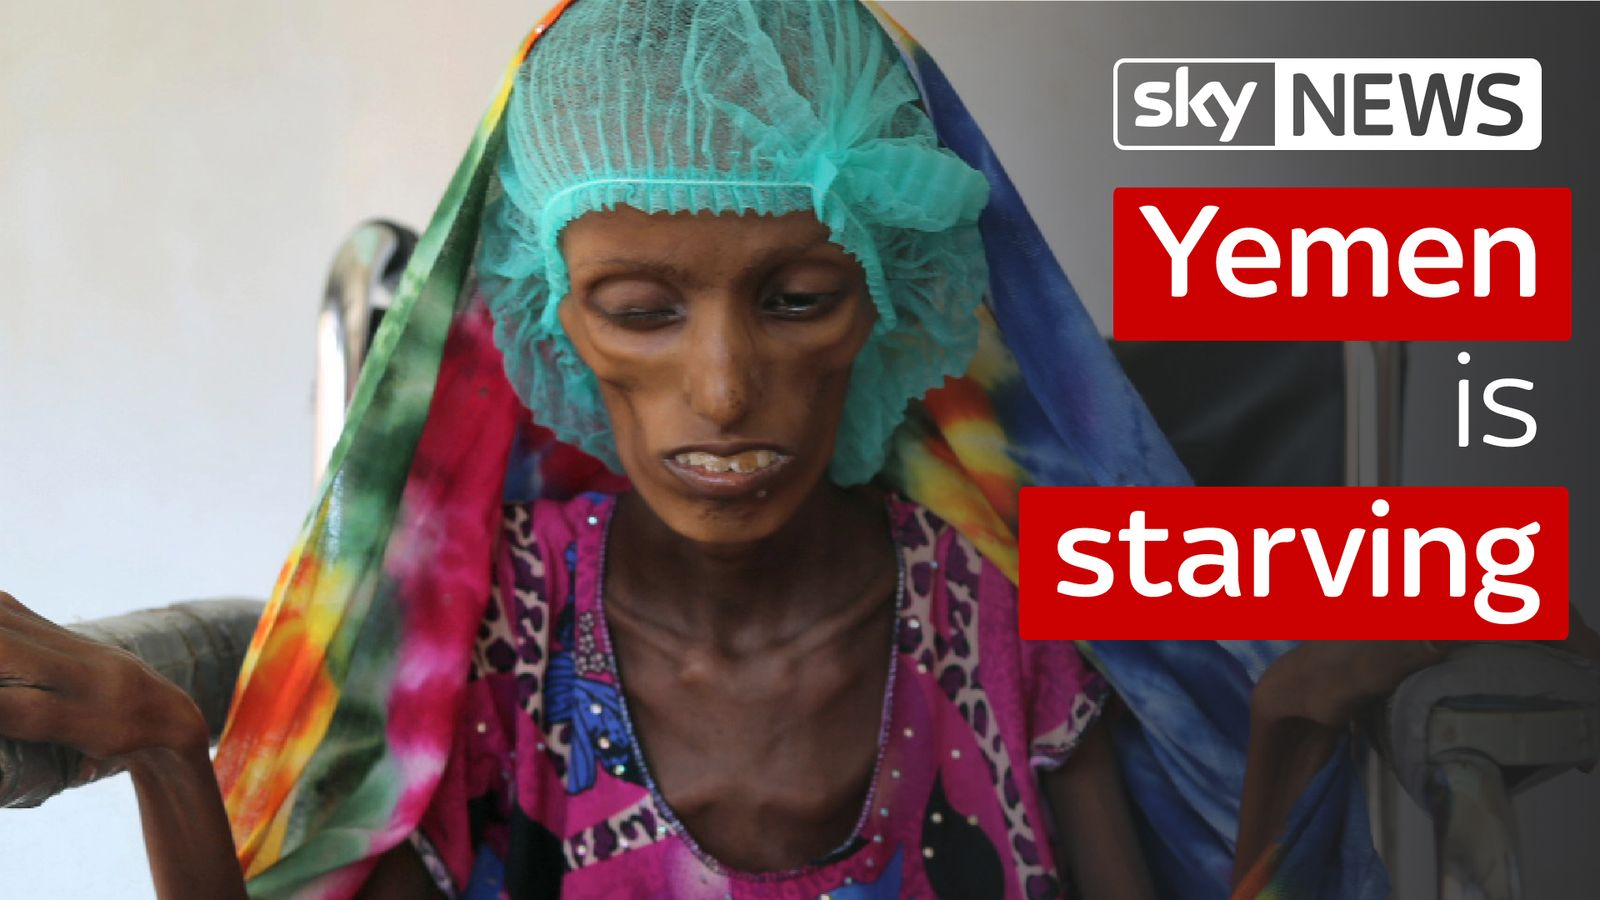 People In Yemen Are Starving